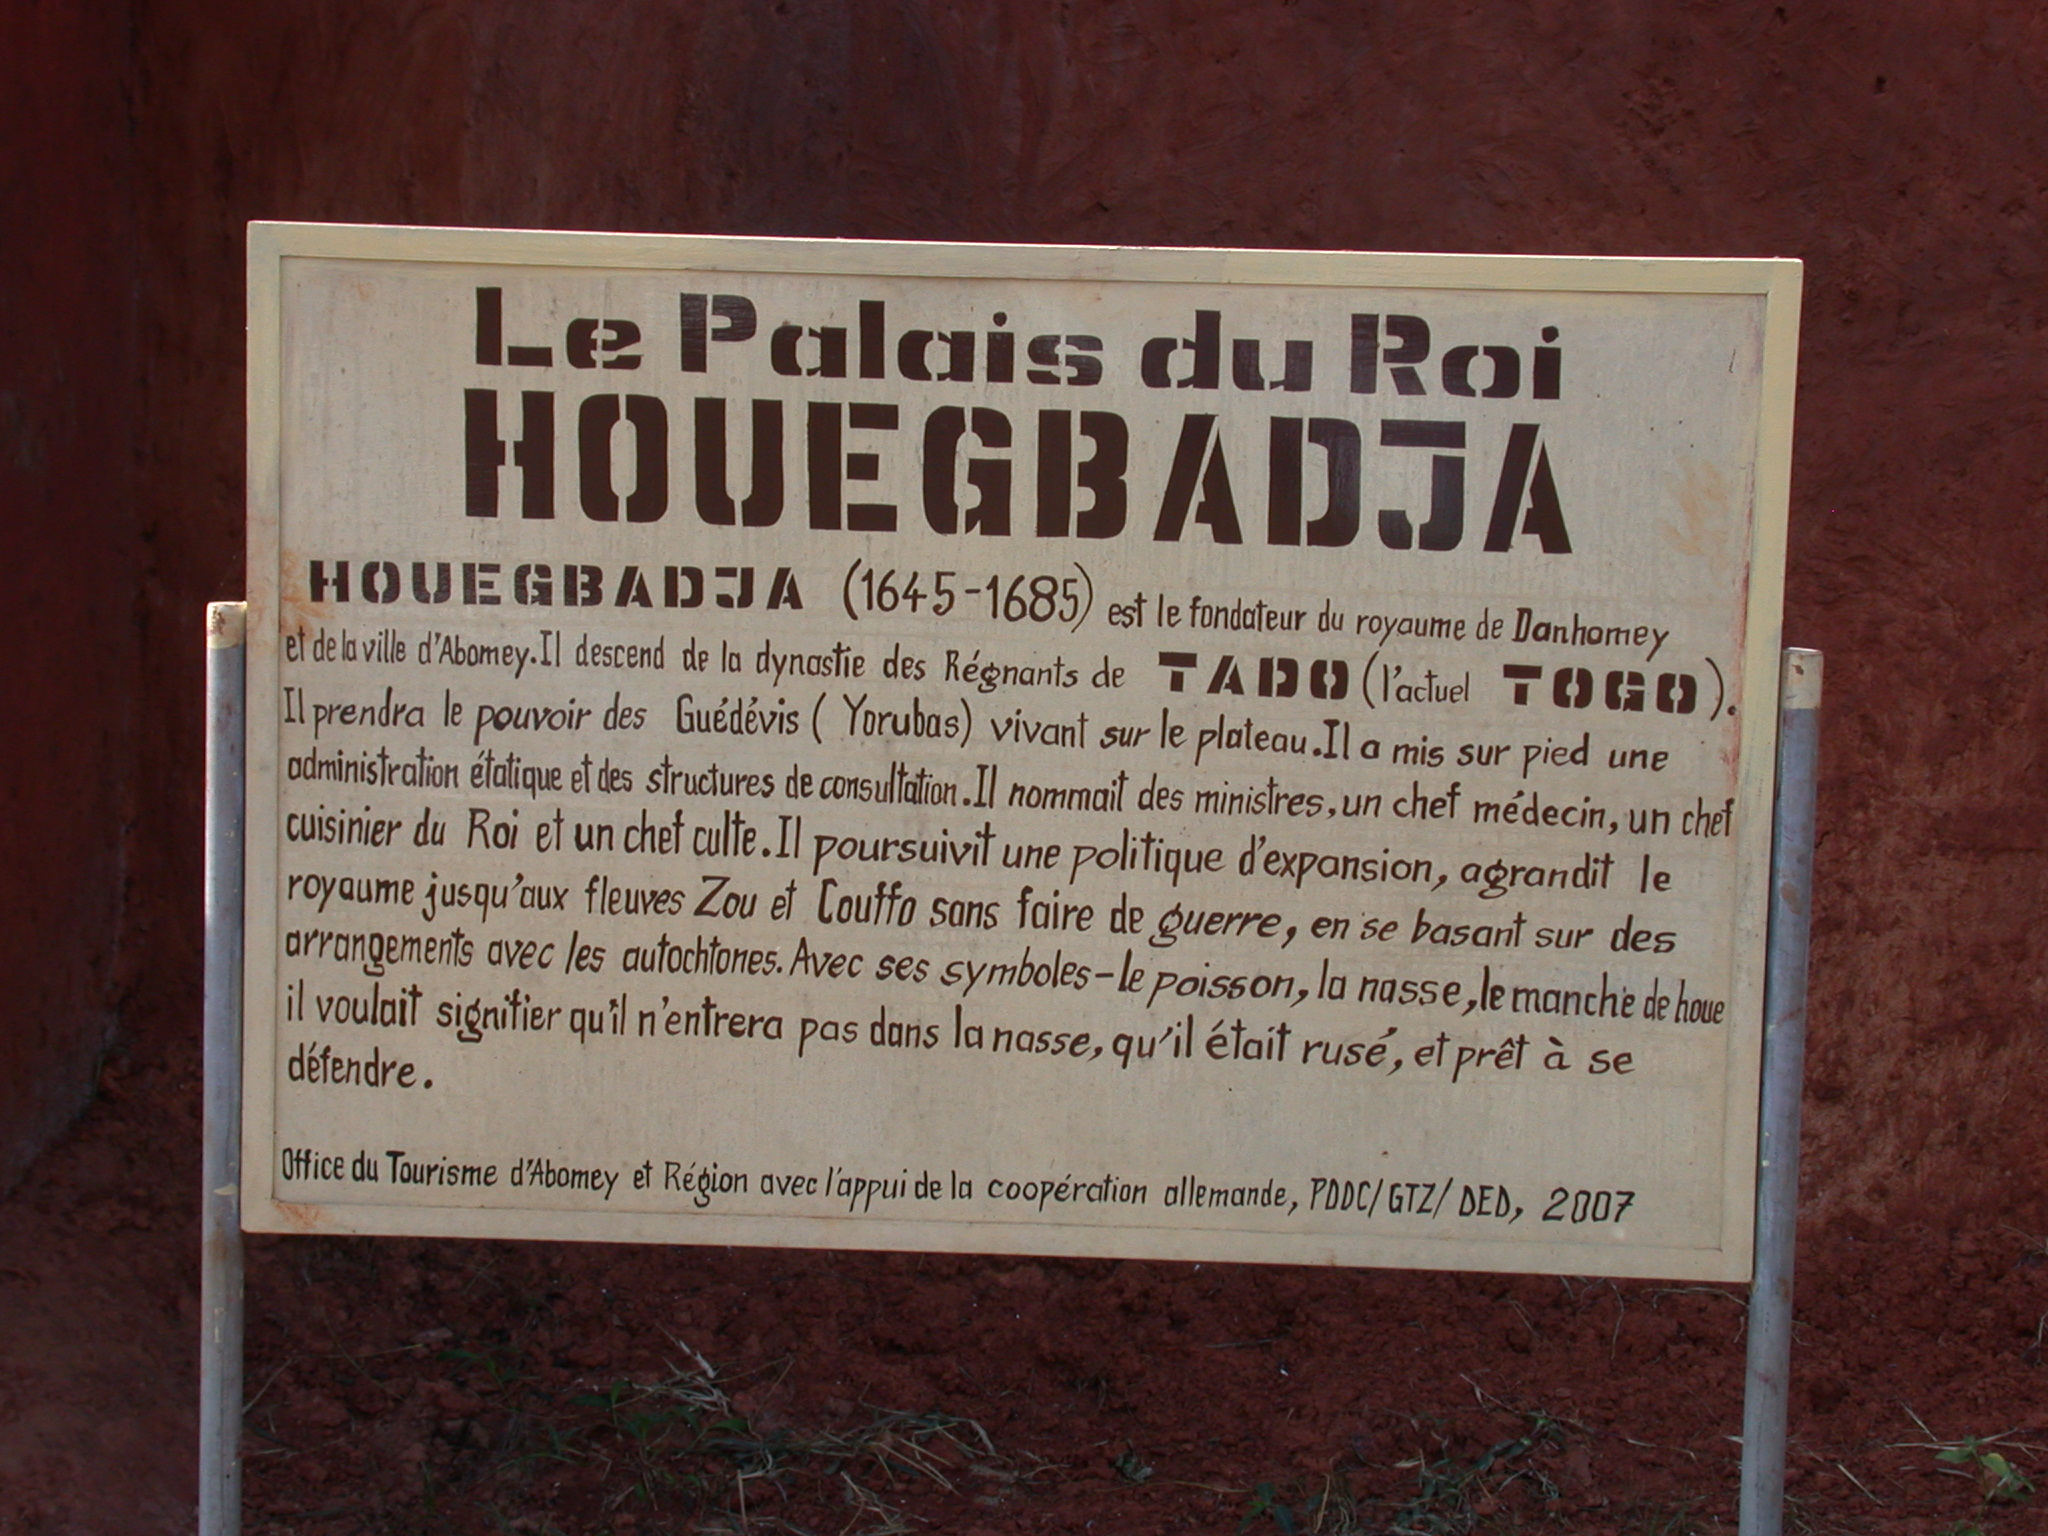 Sign for Palace of King Houegbadja, Abomey, Benin